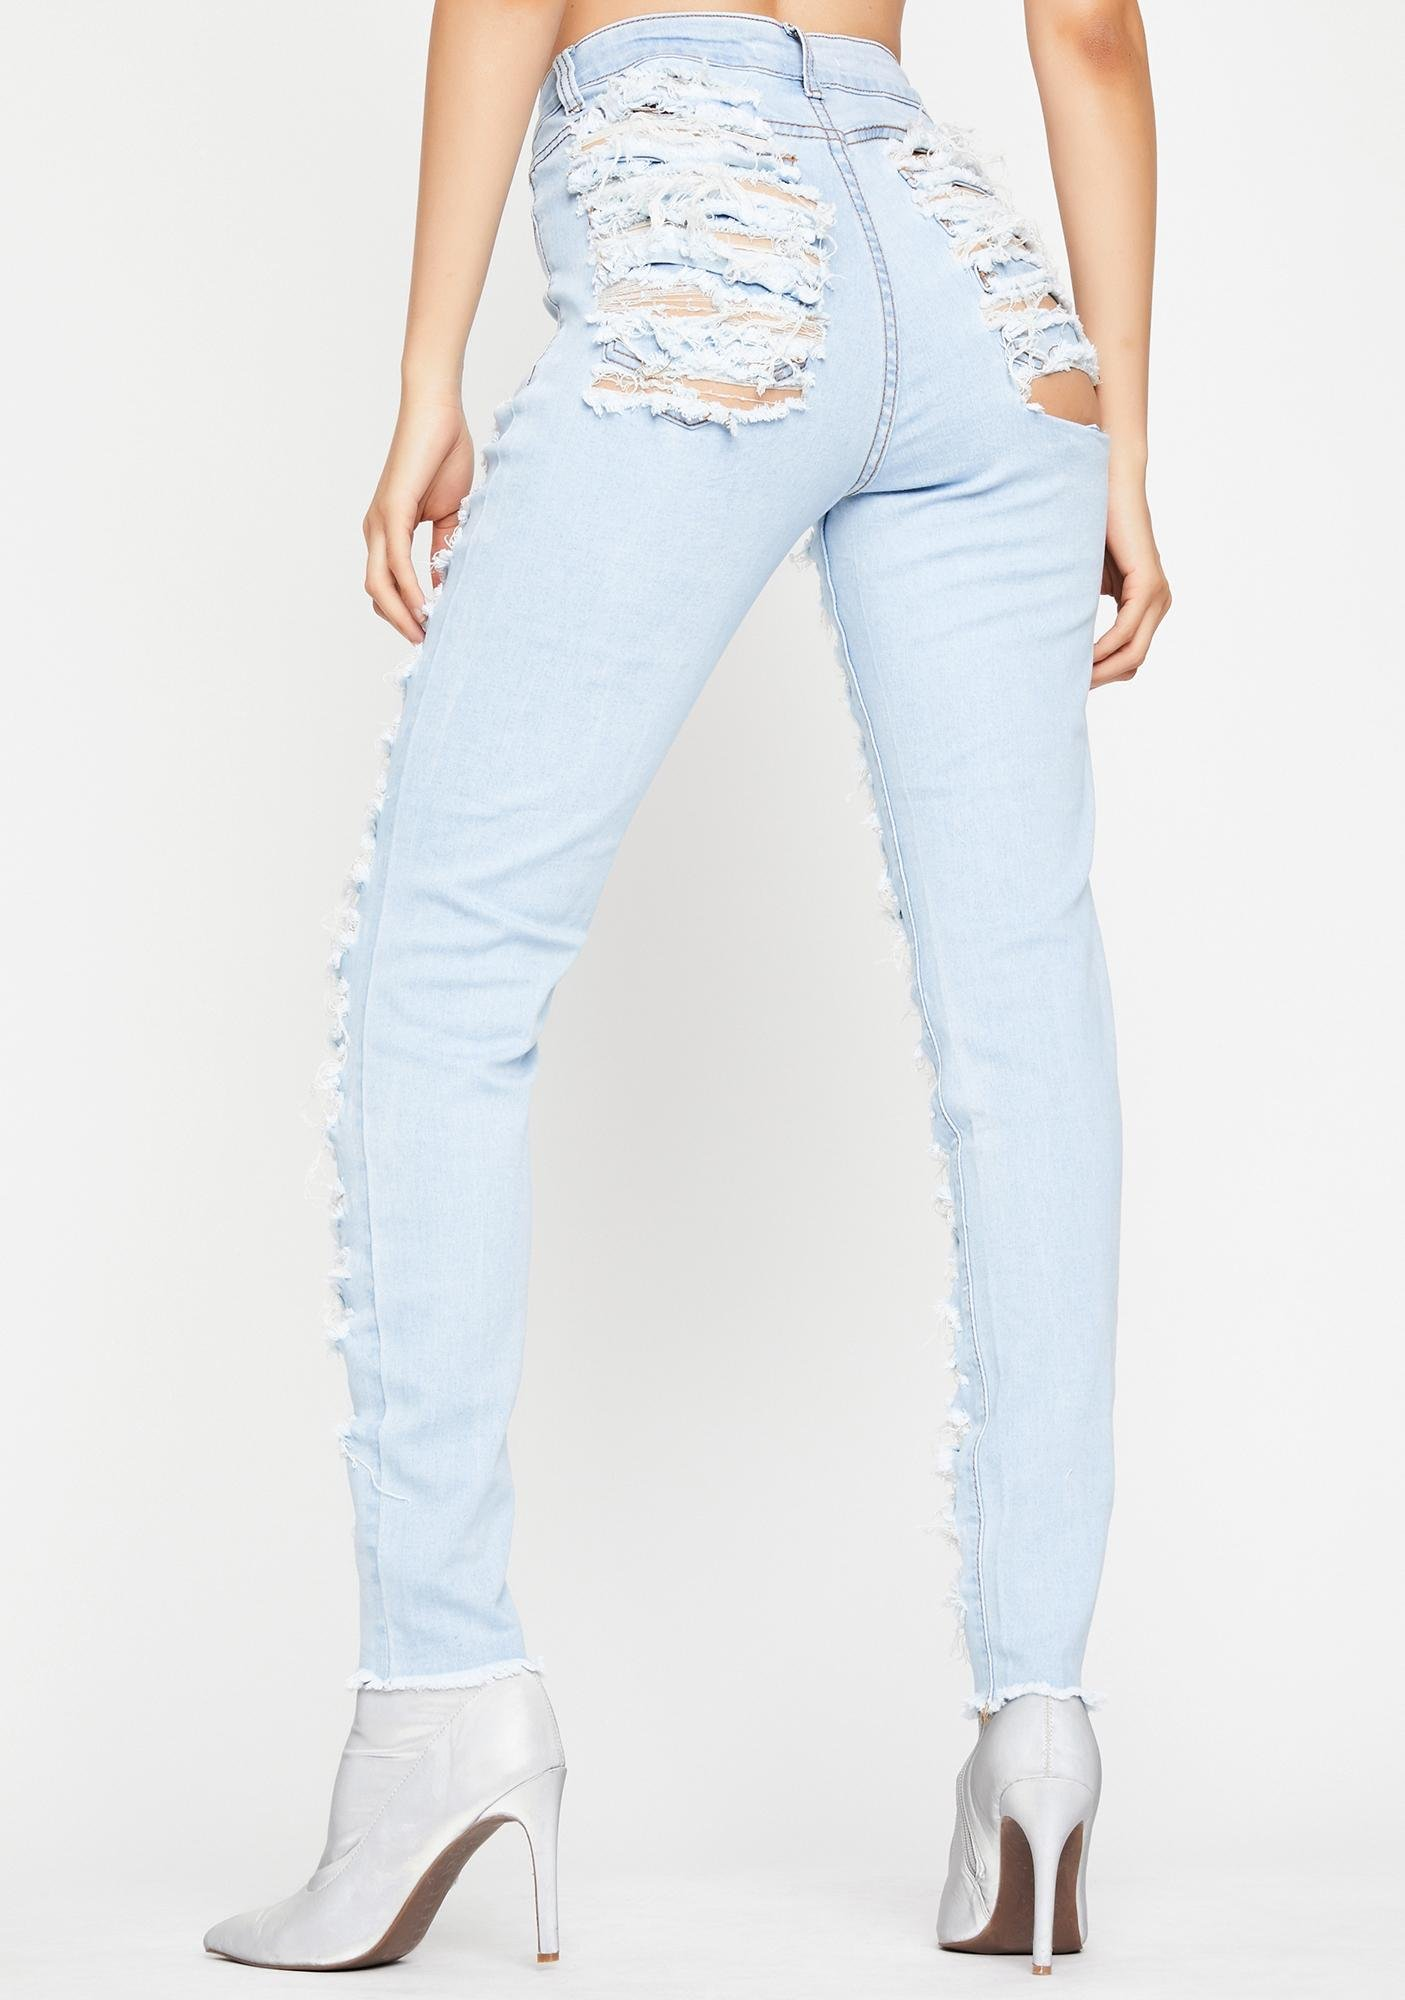 Torn Up Skinny Jeans